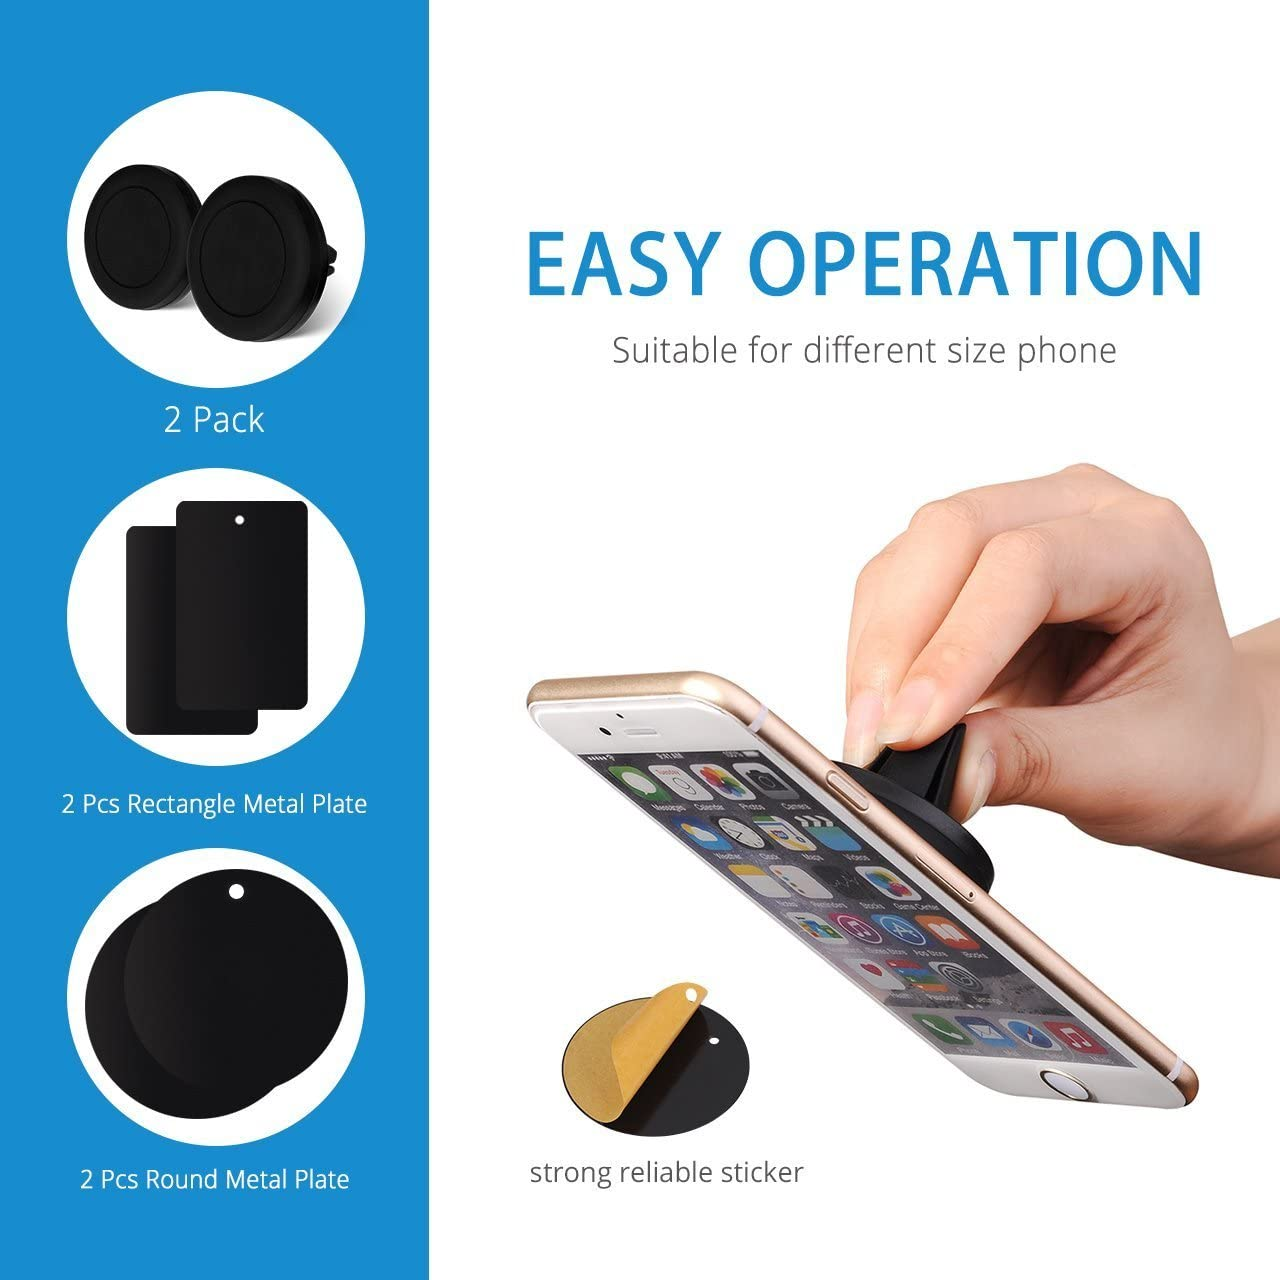 Air Vent Universal iPhone Samsung Smartphone Holder with Magnets and Metal Plates for Phones Cases Black 2 Packs iSunnao CM-7903 Magnetic Phone Car Mount Mounting Cellphones GPS Driving Gears